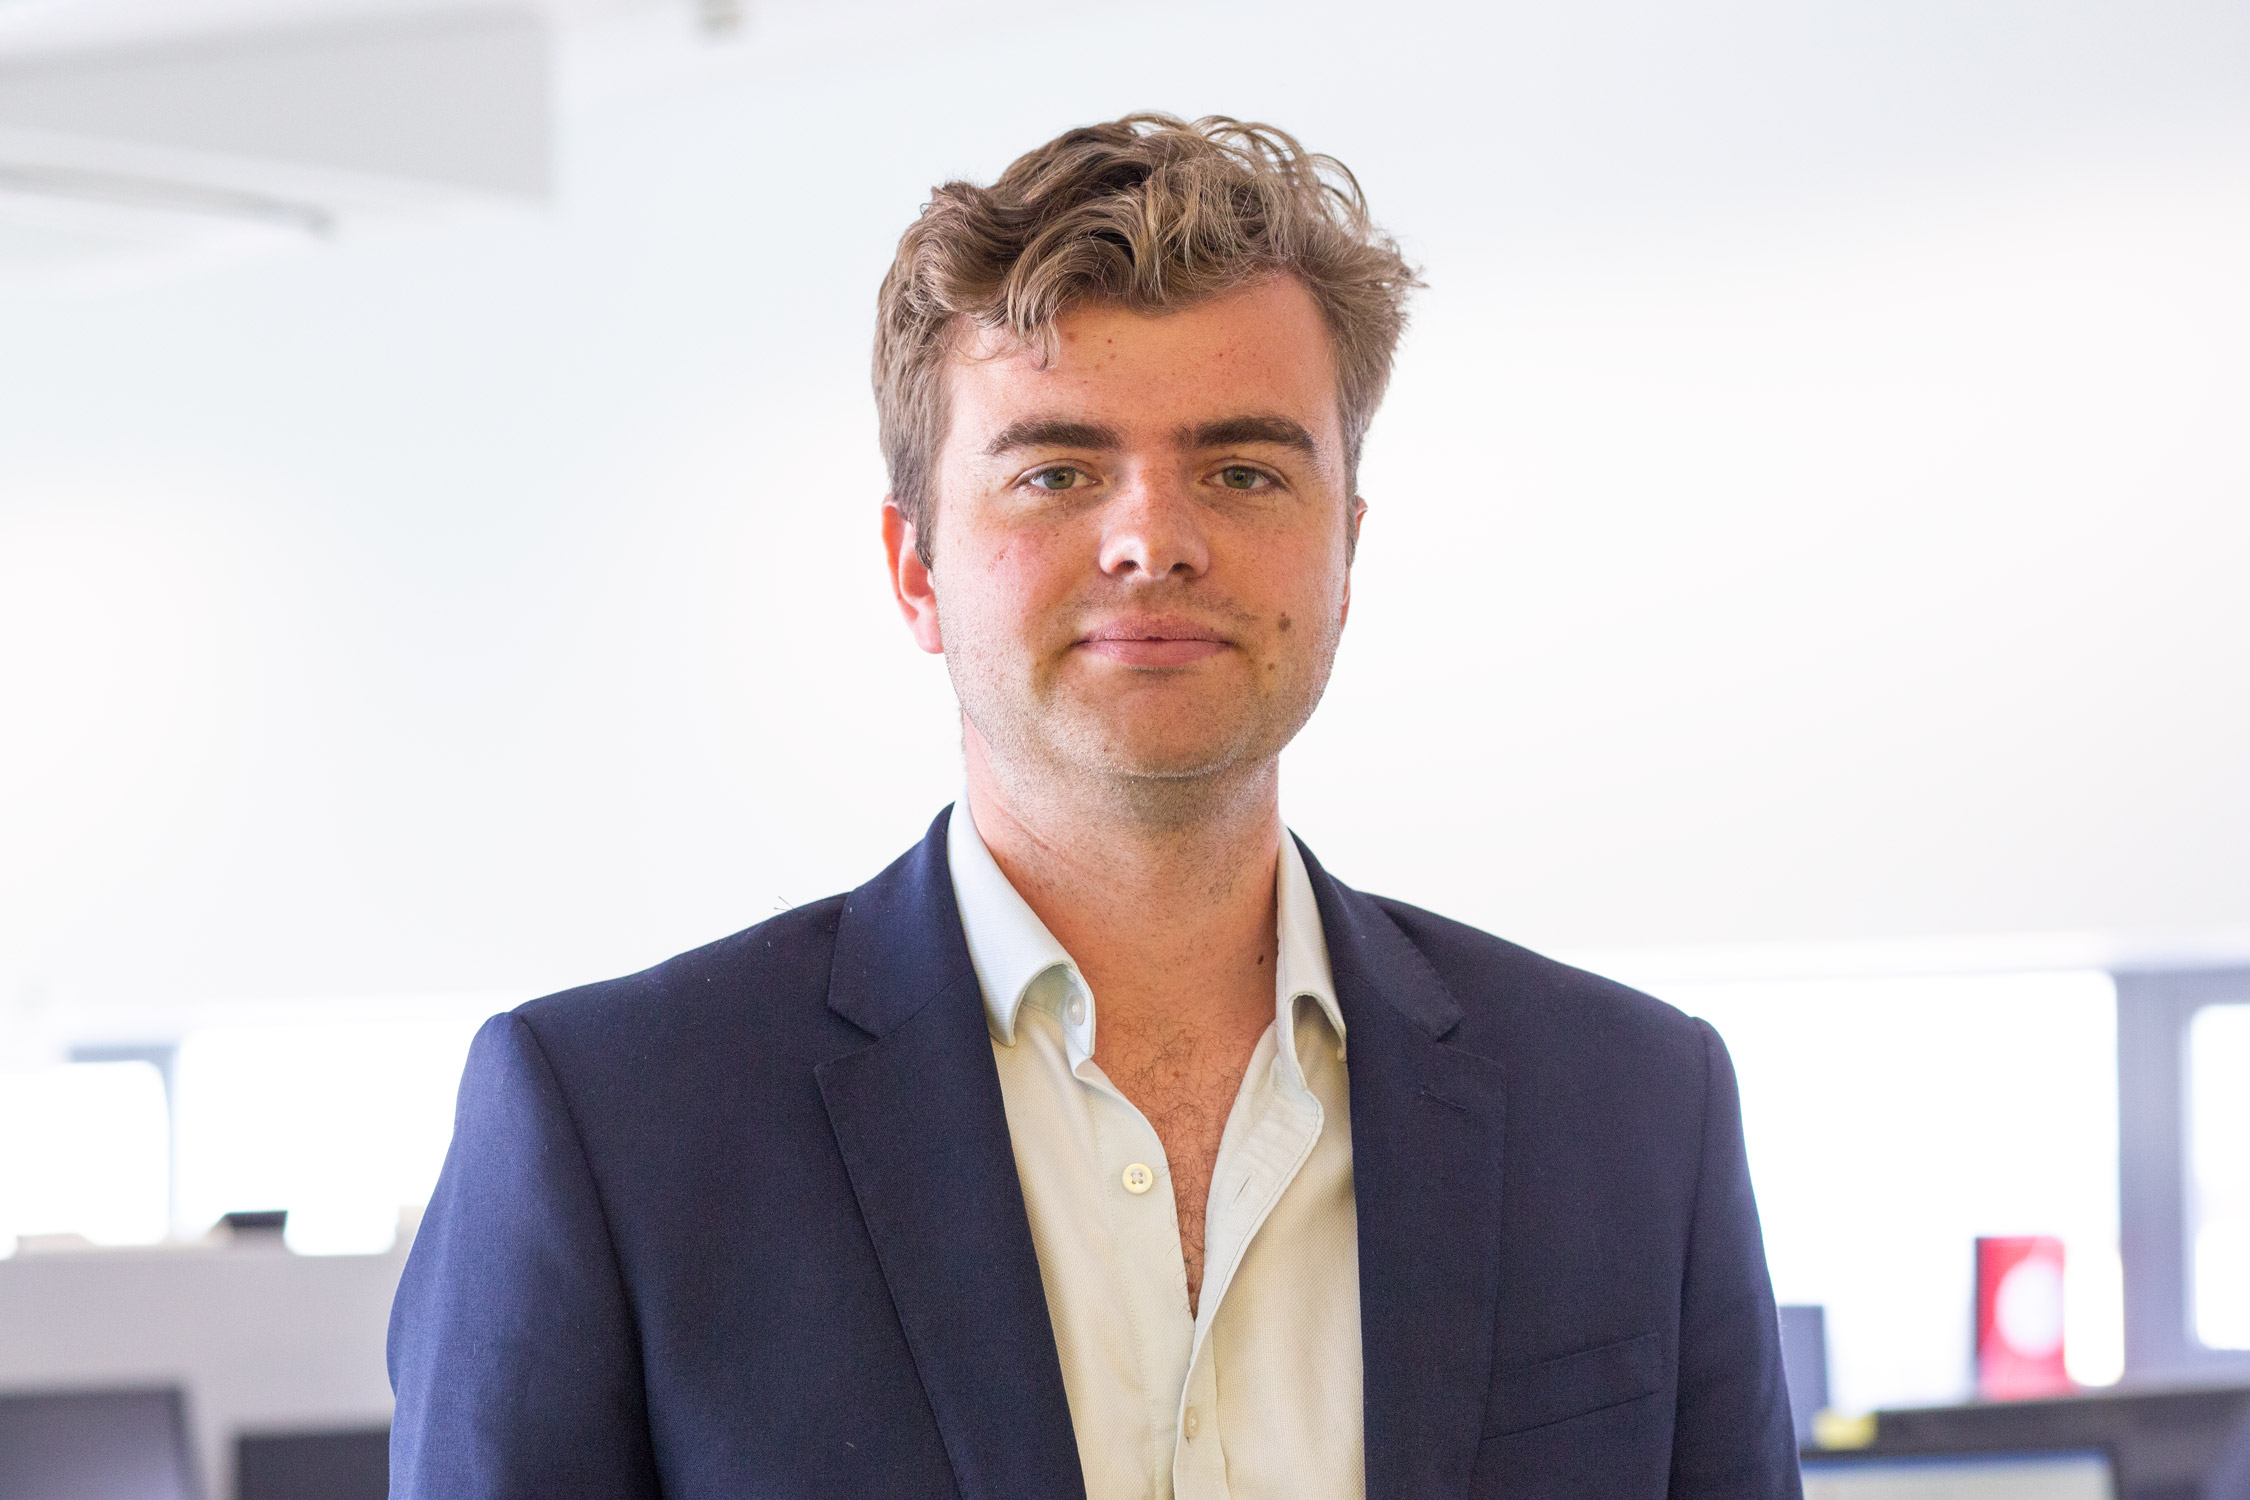 Image of Guy Taylor, Consultant at Peregrine Communications